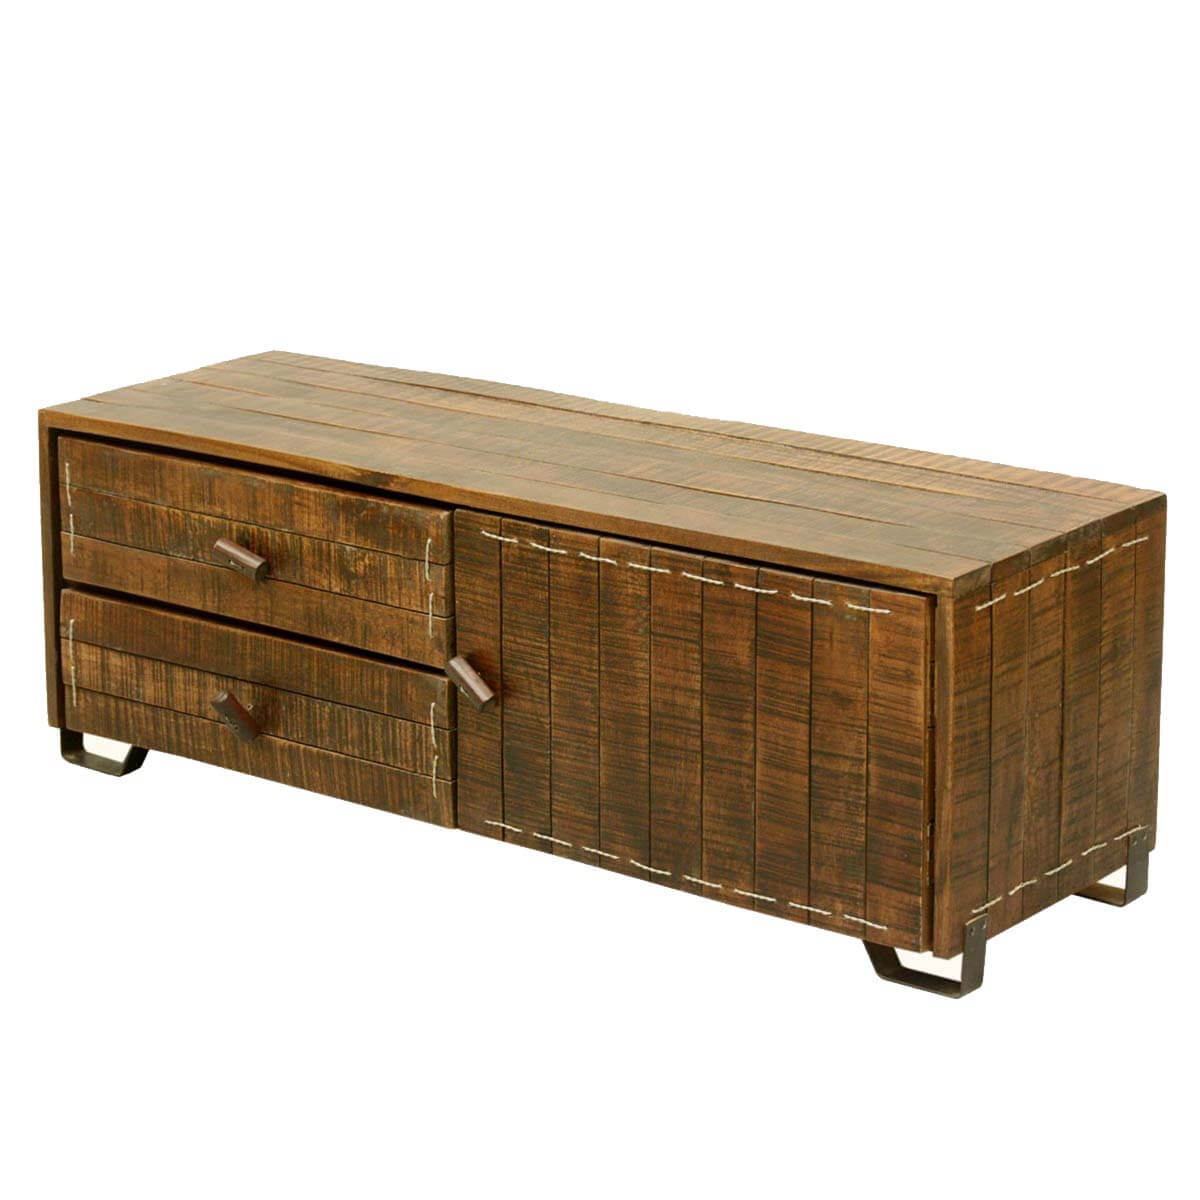 Scholar Reclaimed Wood Furniture Tv Stand Media Console W